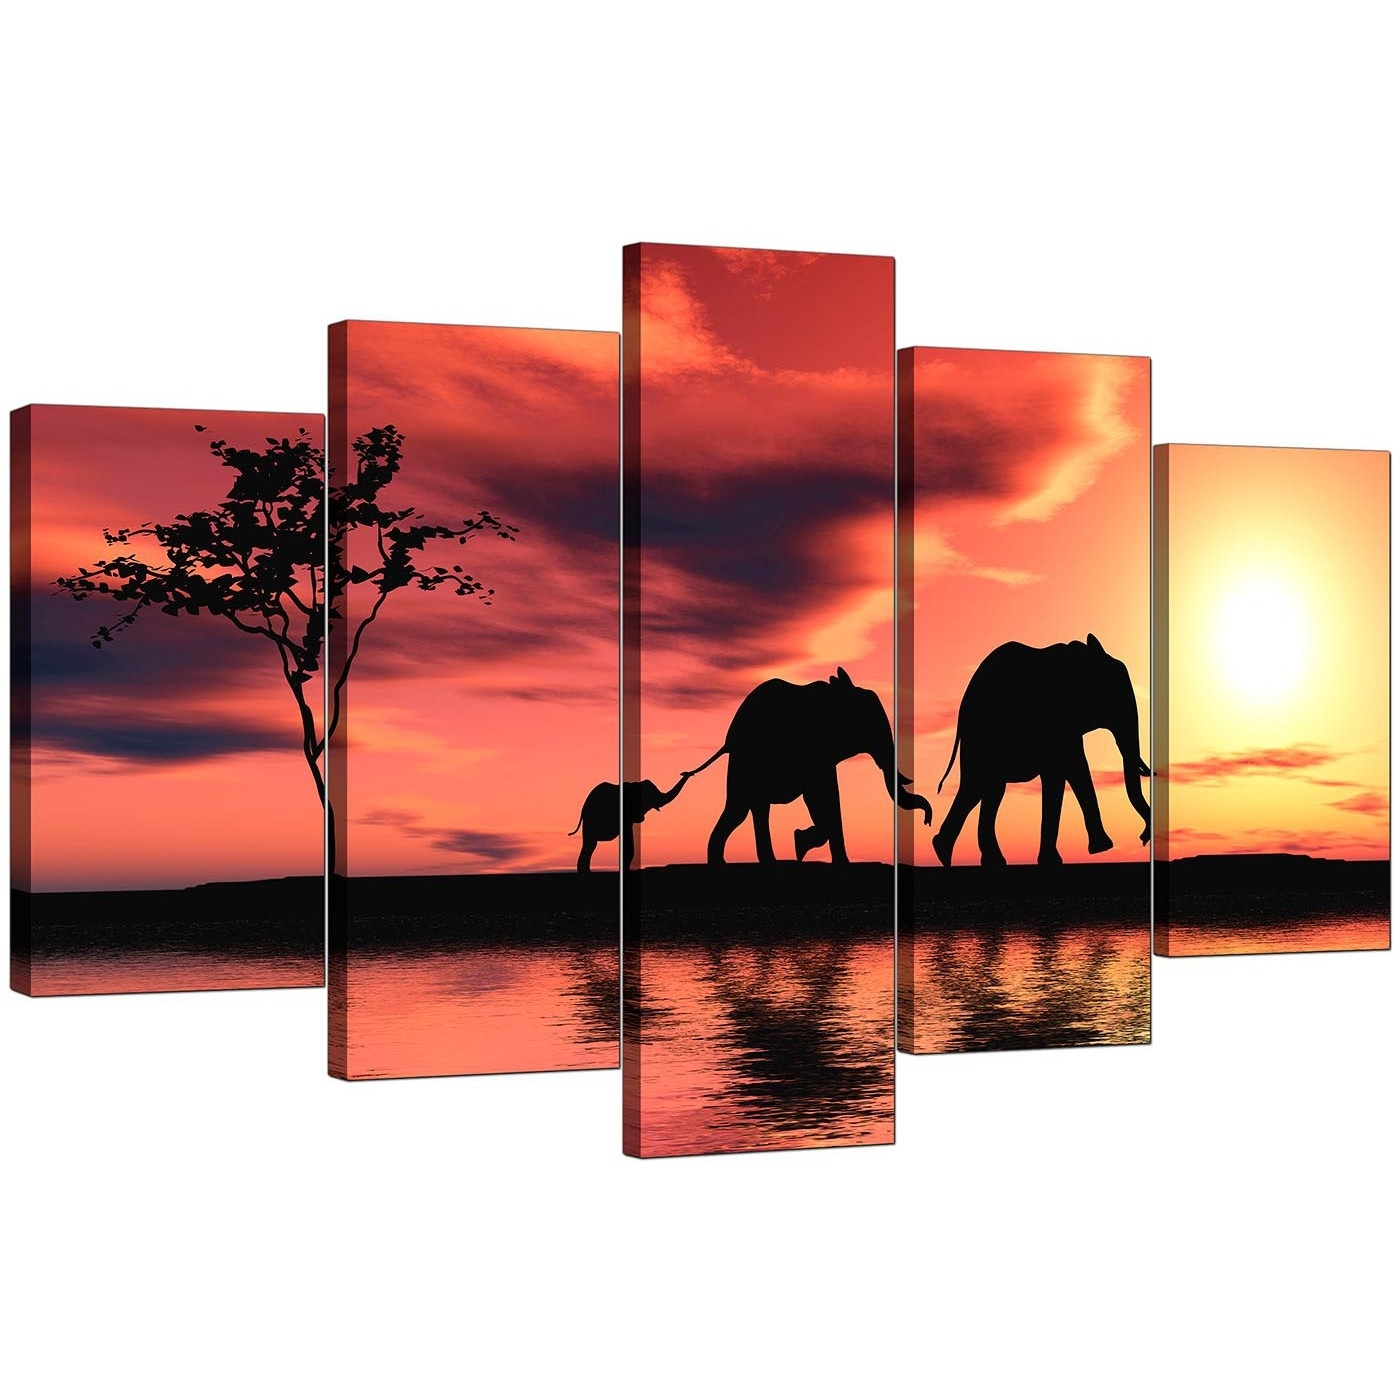 Extra Large Elephants Canvas Prints 5 Piece In Orange Pertaining To Best And Newest Elephant Canvas Wall Art (View 14 of 20)